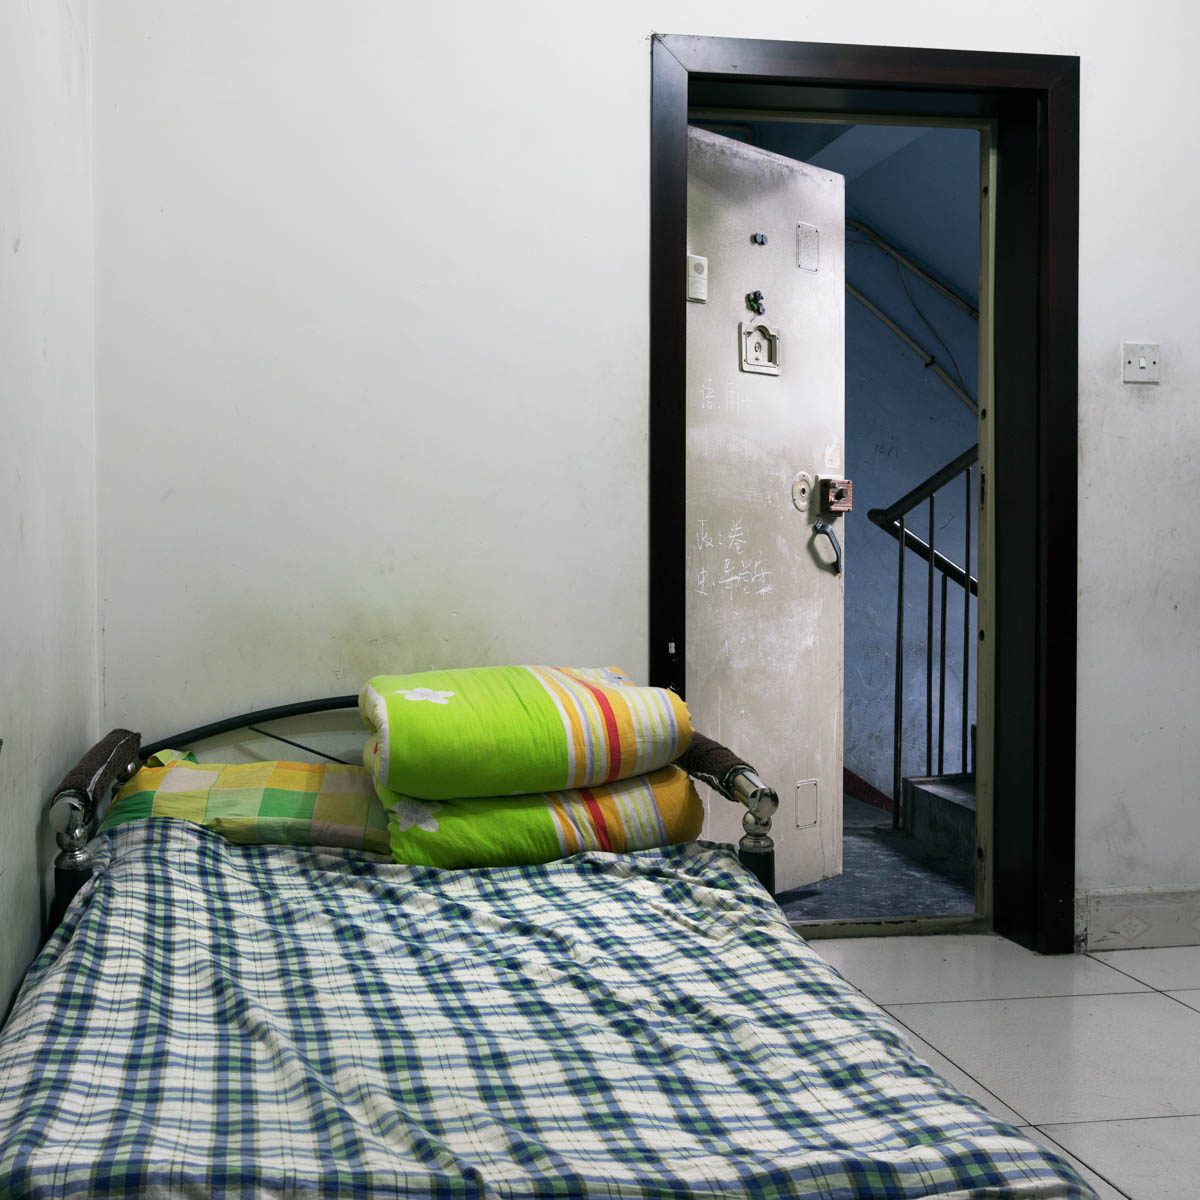 """Lu Chao's and Chen Yi's interior - One bed for two. Chao and Yi sleep in the entrance hall of the apartment belonging to the owner of the Lucky Hair Salon. The place is huge but every room is rented out.  Overwhelmed with work, they only had a few minutes to show us the place.  Chengdu, Sichuan Province, China, April 2012. - Copyright © © S. Borcard - N. Metraux - Chengdu - Sichuan Province - China - <A href=""""https://maps.google.com/?ll=30.662428,104.066055&z=16"""" target=""""_blank"""">(Map Lu Chao's and Chen Yi's interior)</A>"""